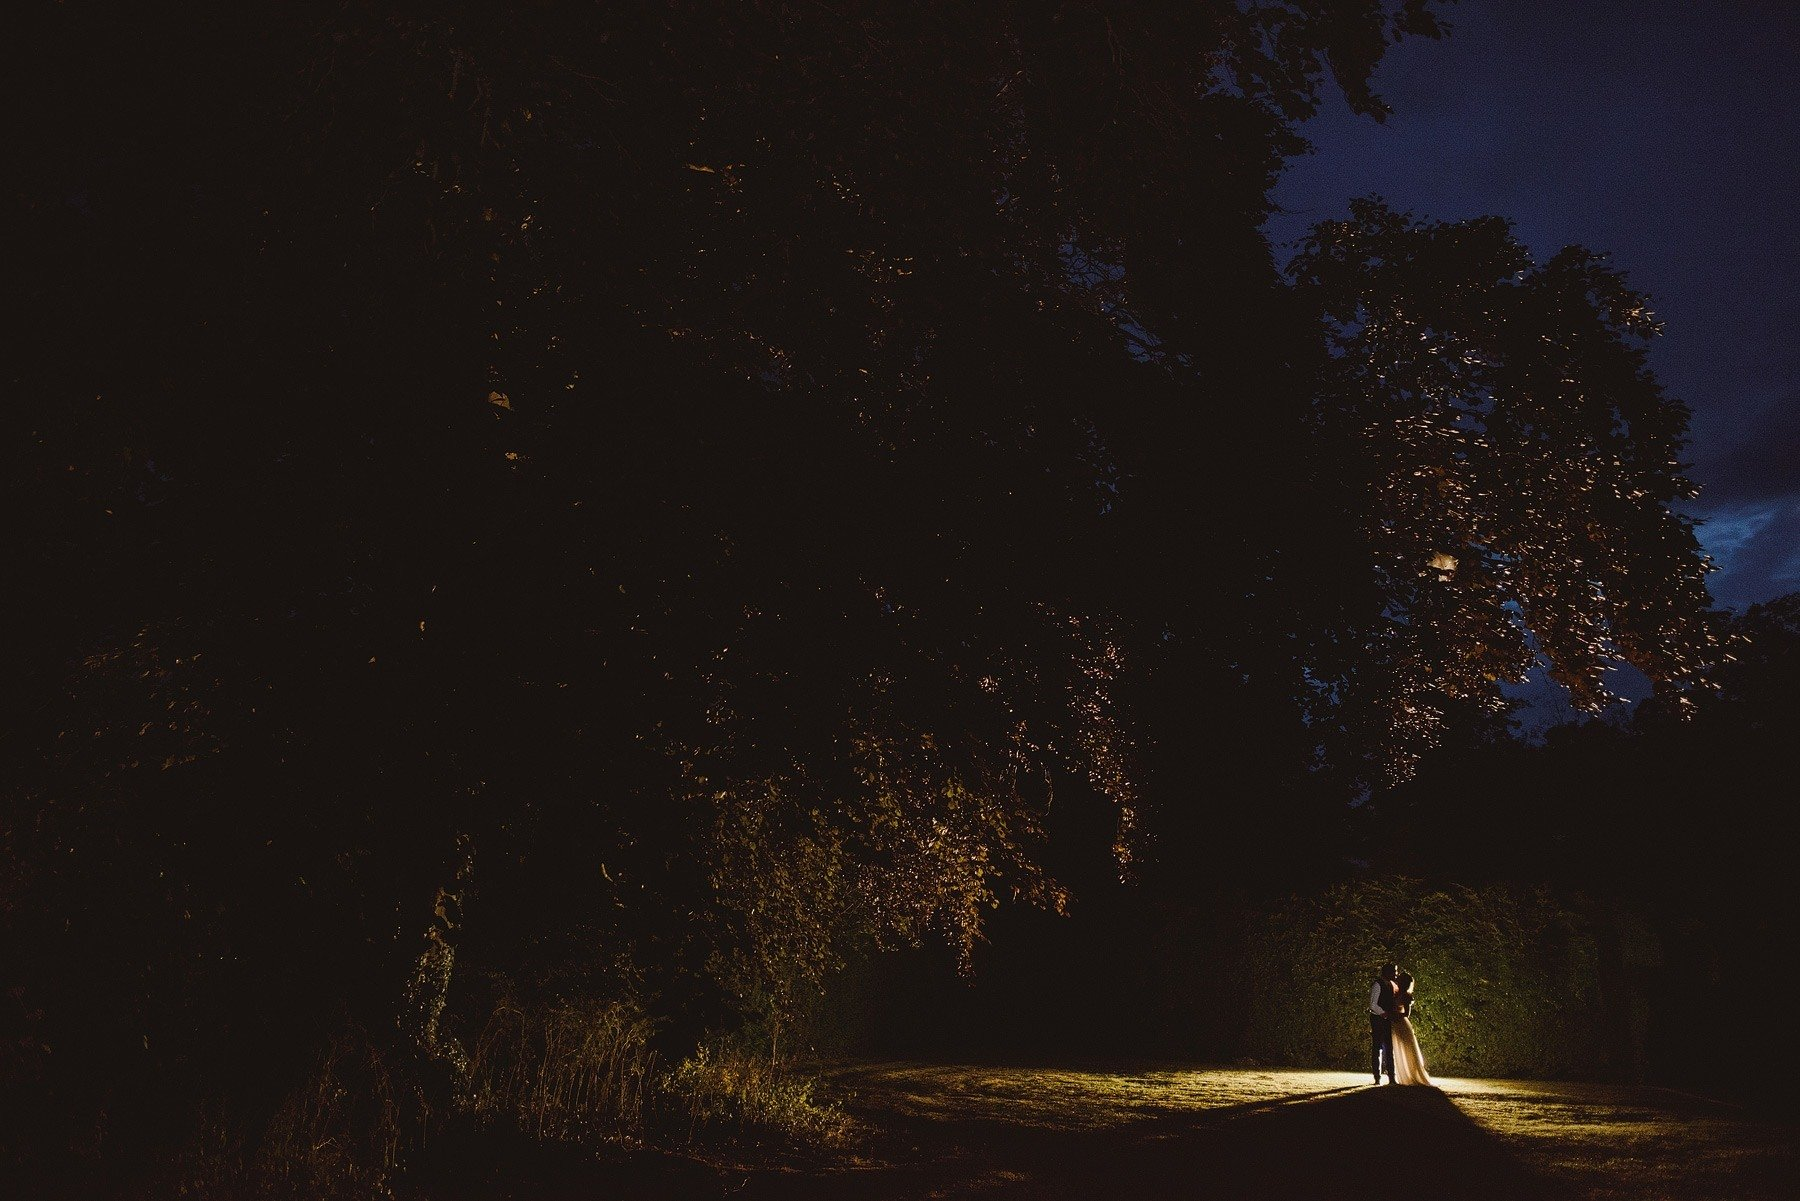 the rectory in crudwell wedding venue at night